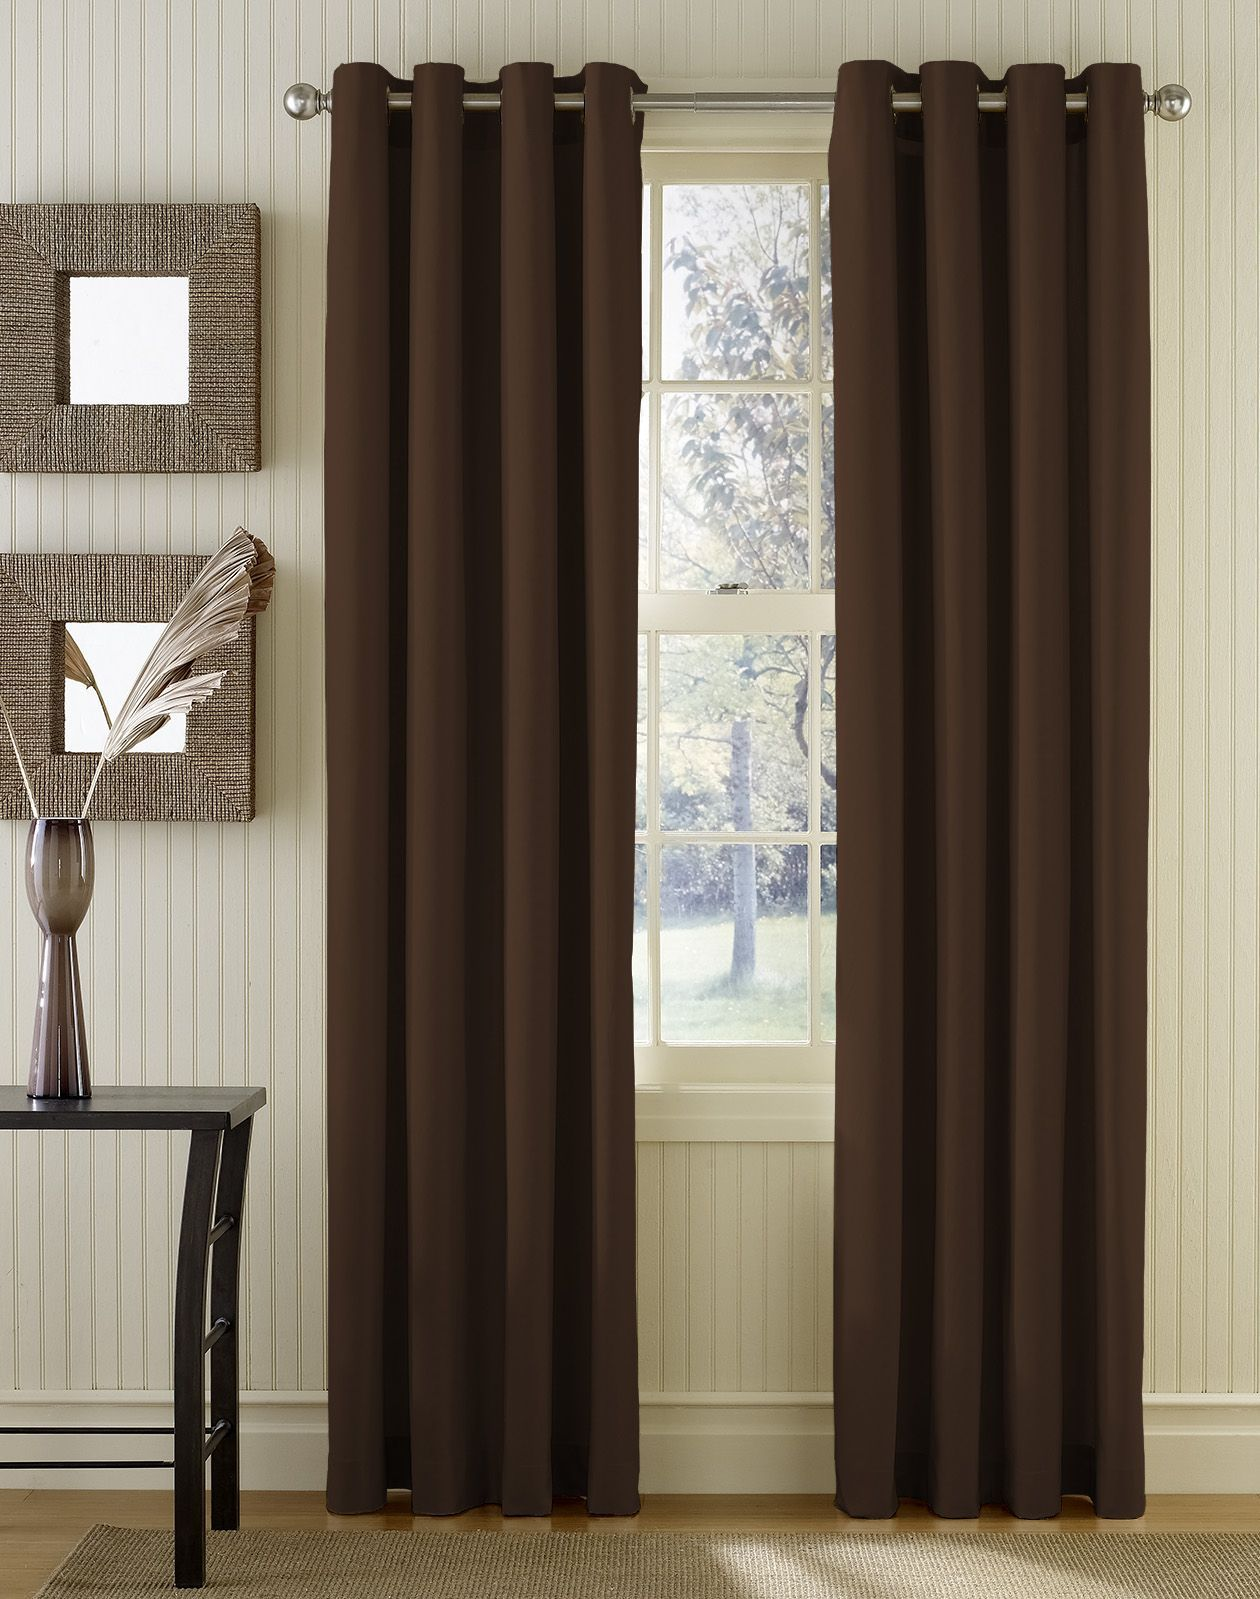 Ideas, Captivating Look Of Curtain Styles For Windows ...